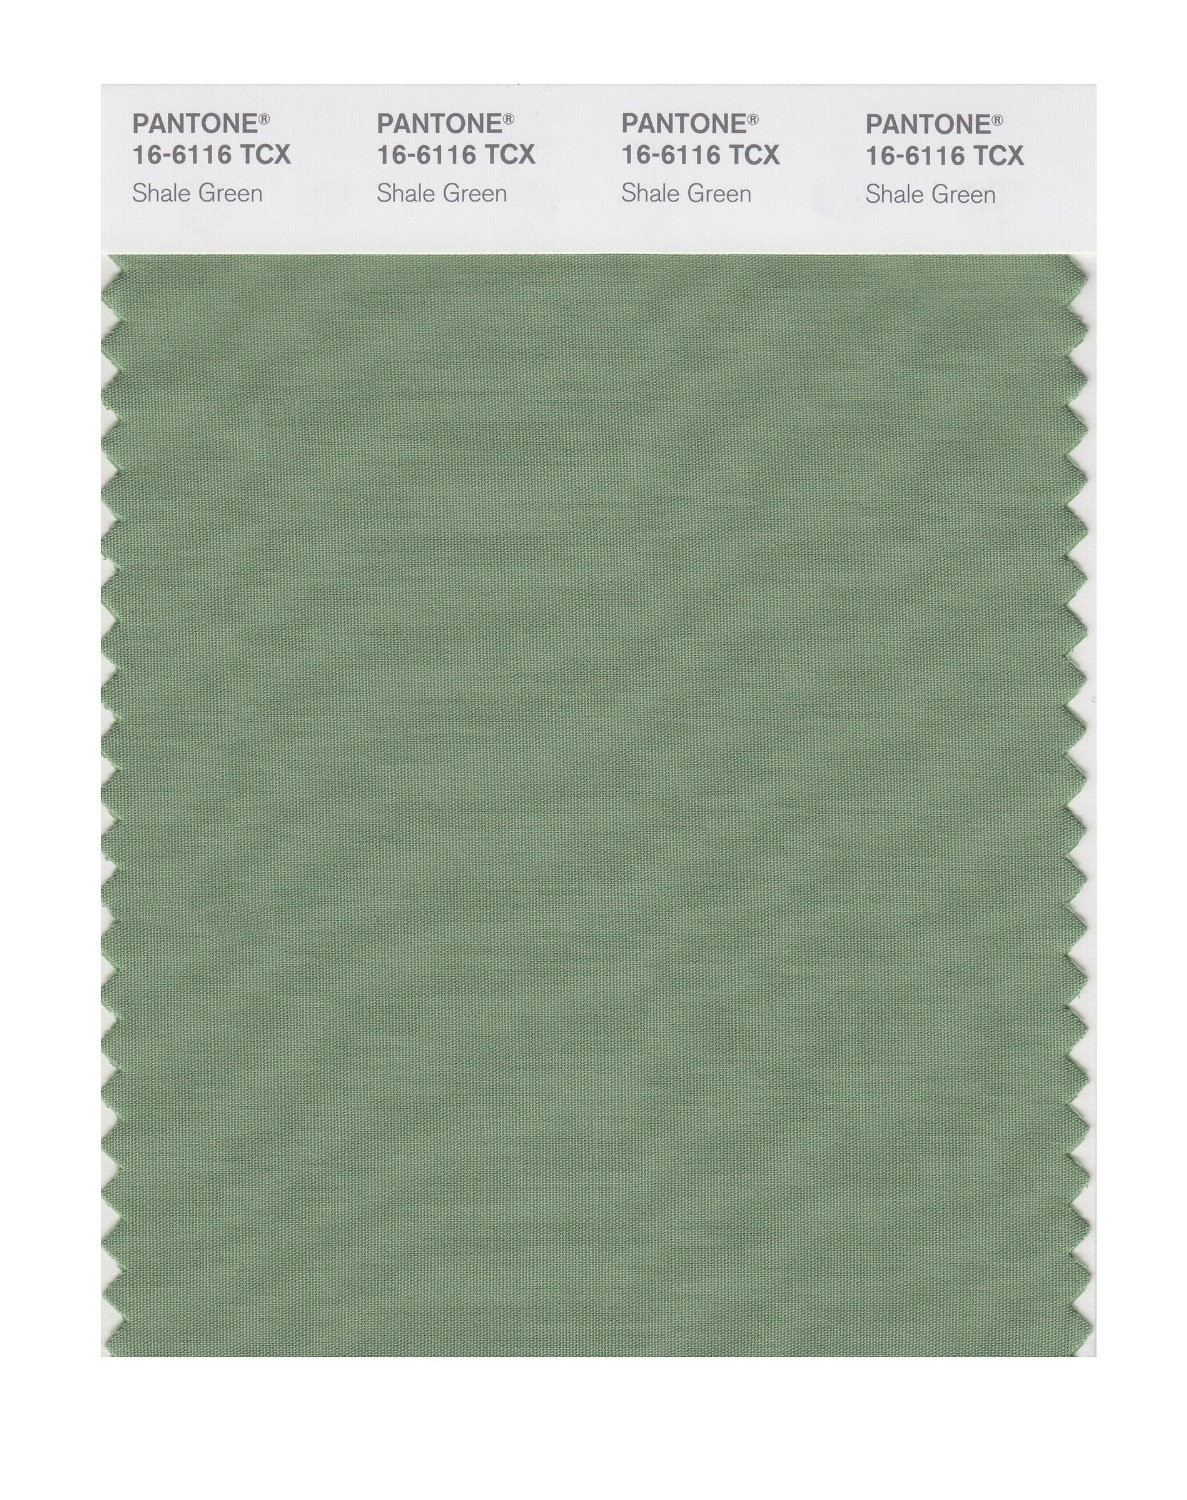 Pantone 16-6116 TCX Swatch Card Shale Green